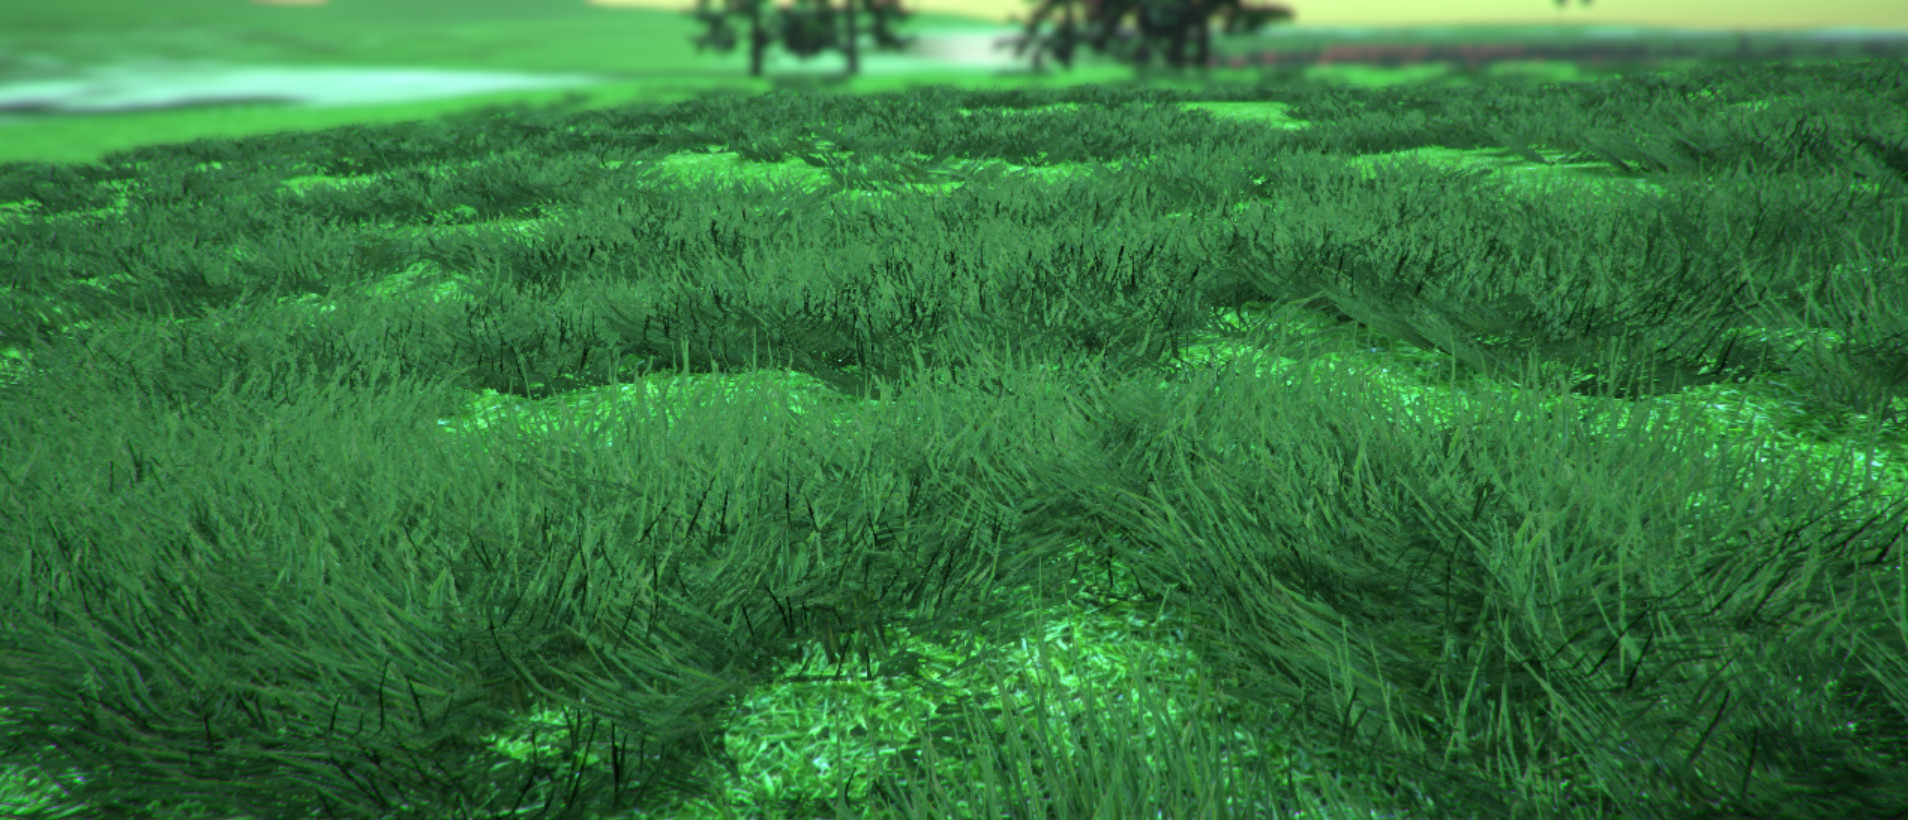 BEST WAY OF MAKING GRASS! looks a lot like speed tree grass, runs as